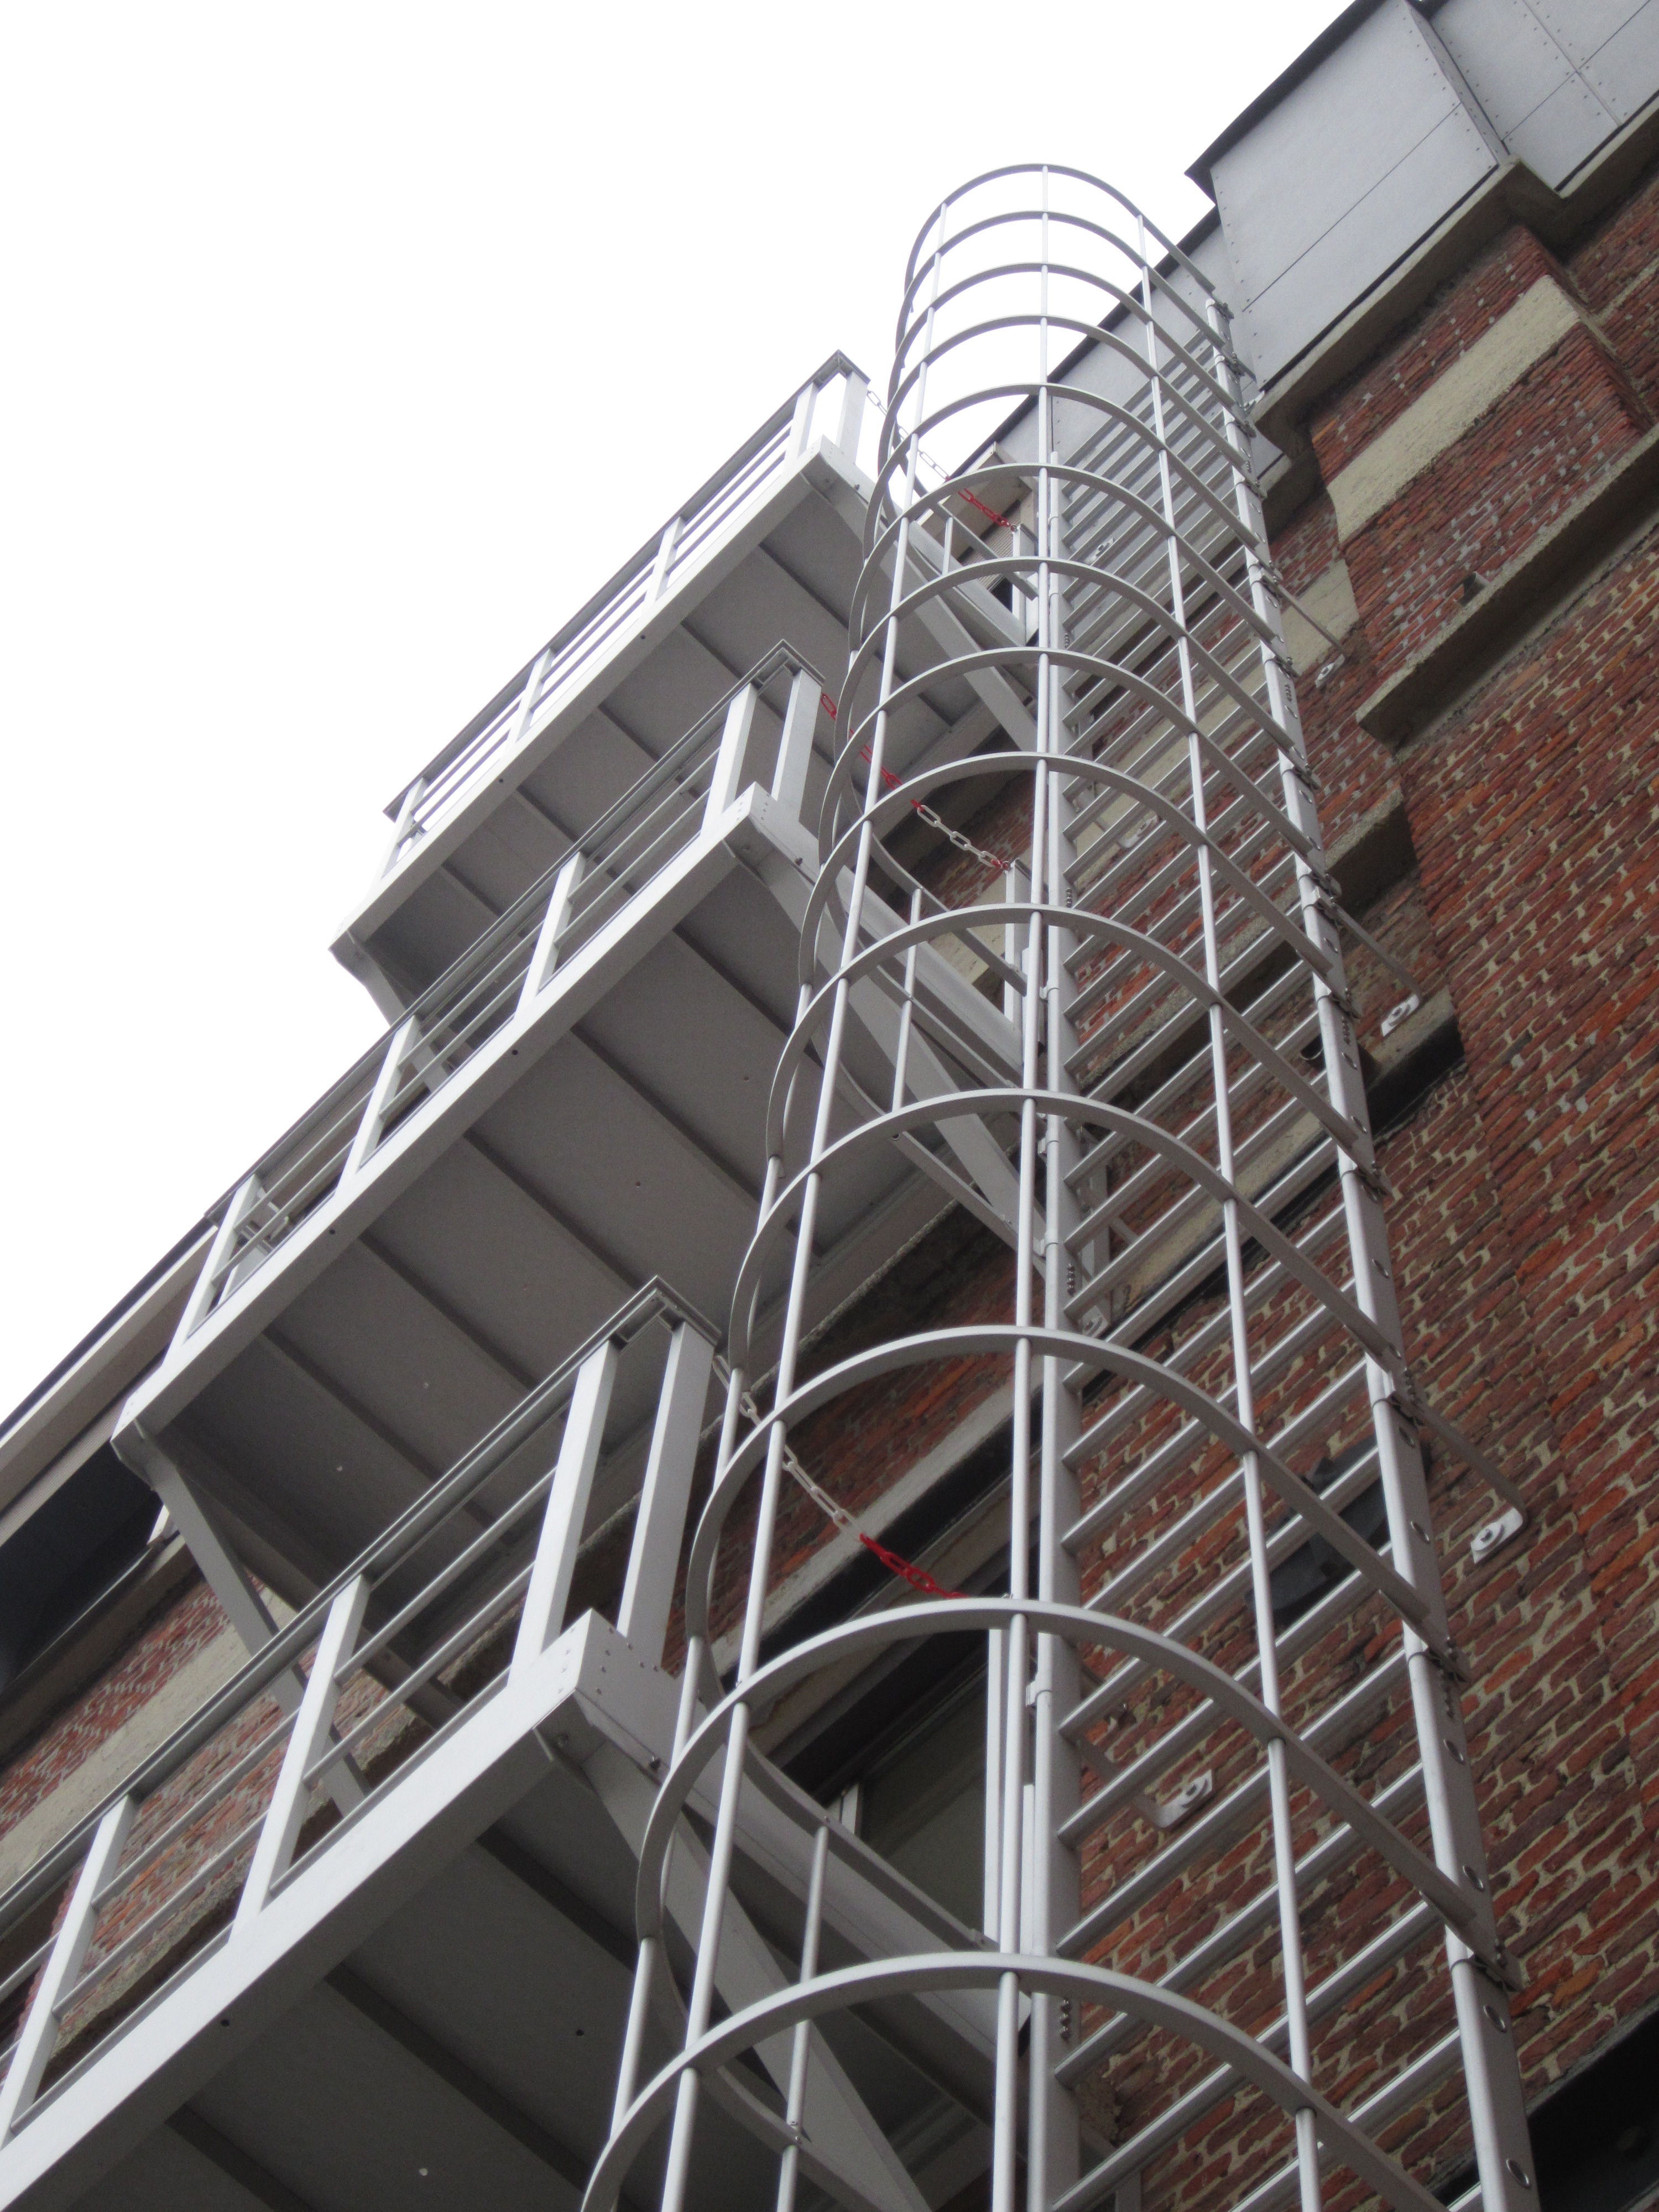 Specialty Ladders